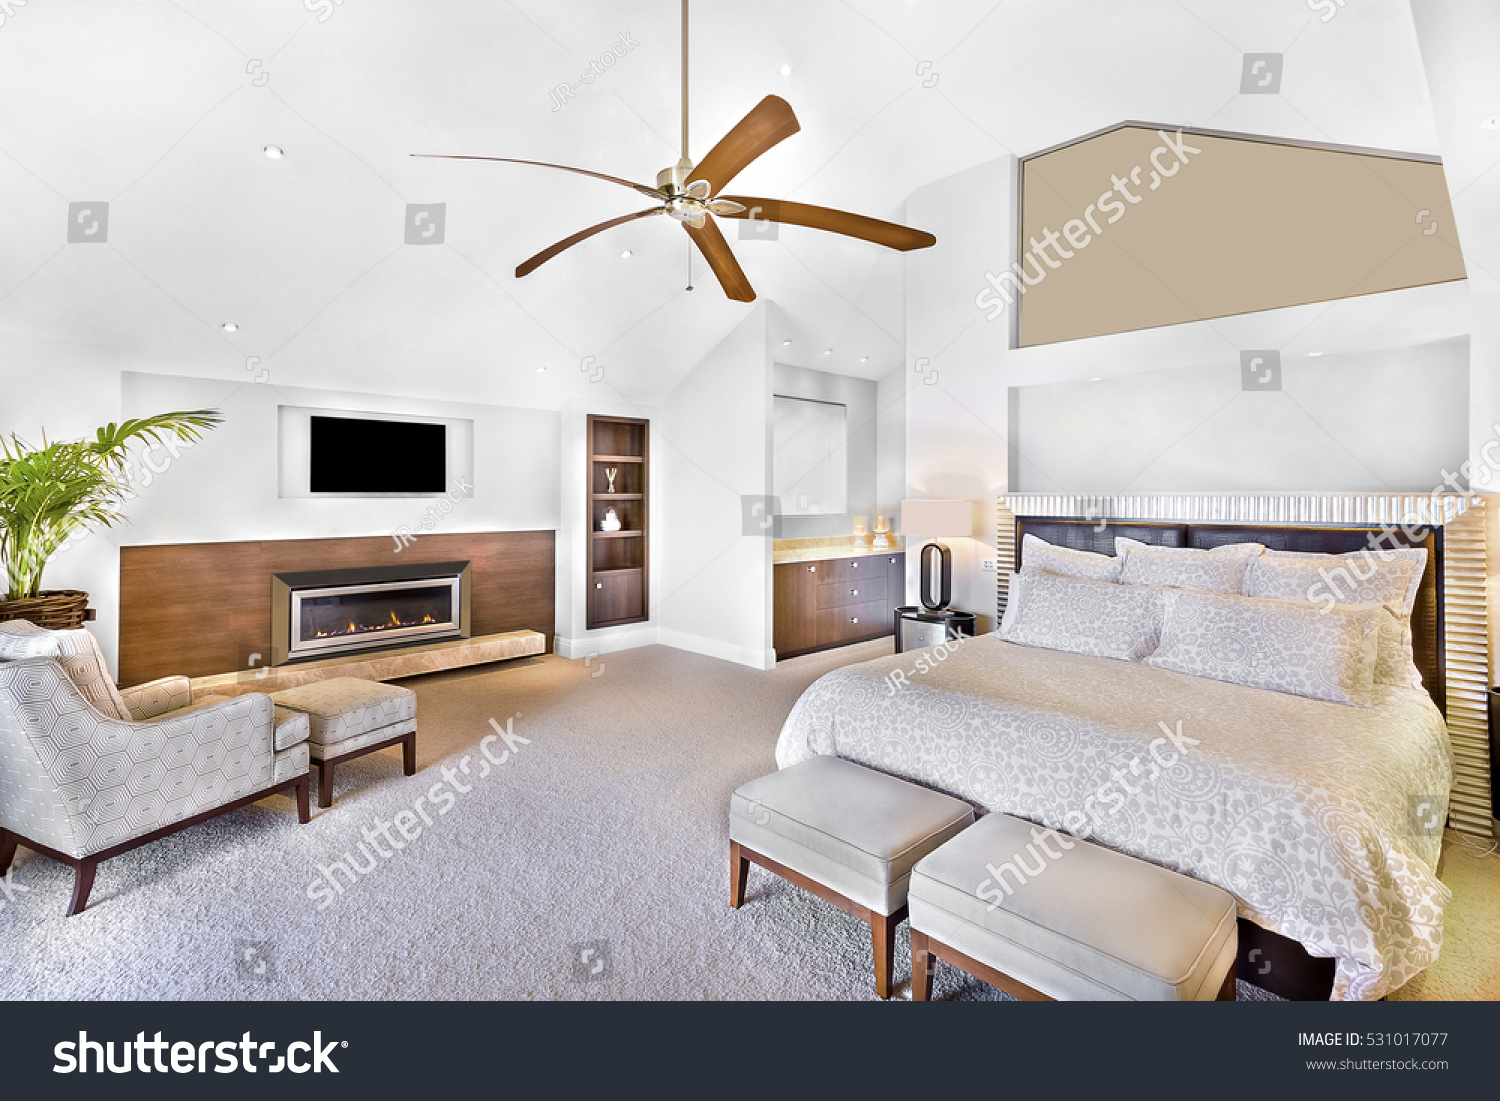 Modern bed area including furniture television stock photo 531017077 shutterstock - Beds attached to the wall ...